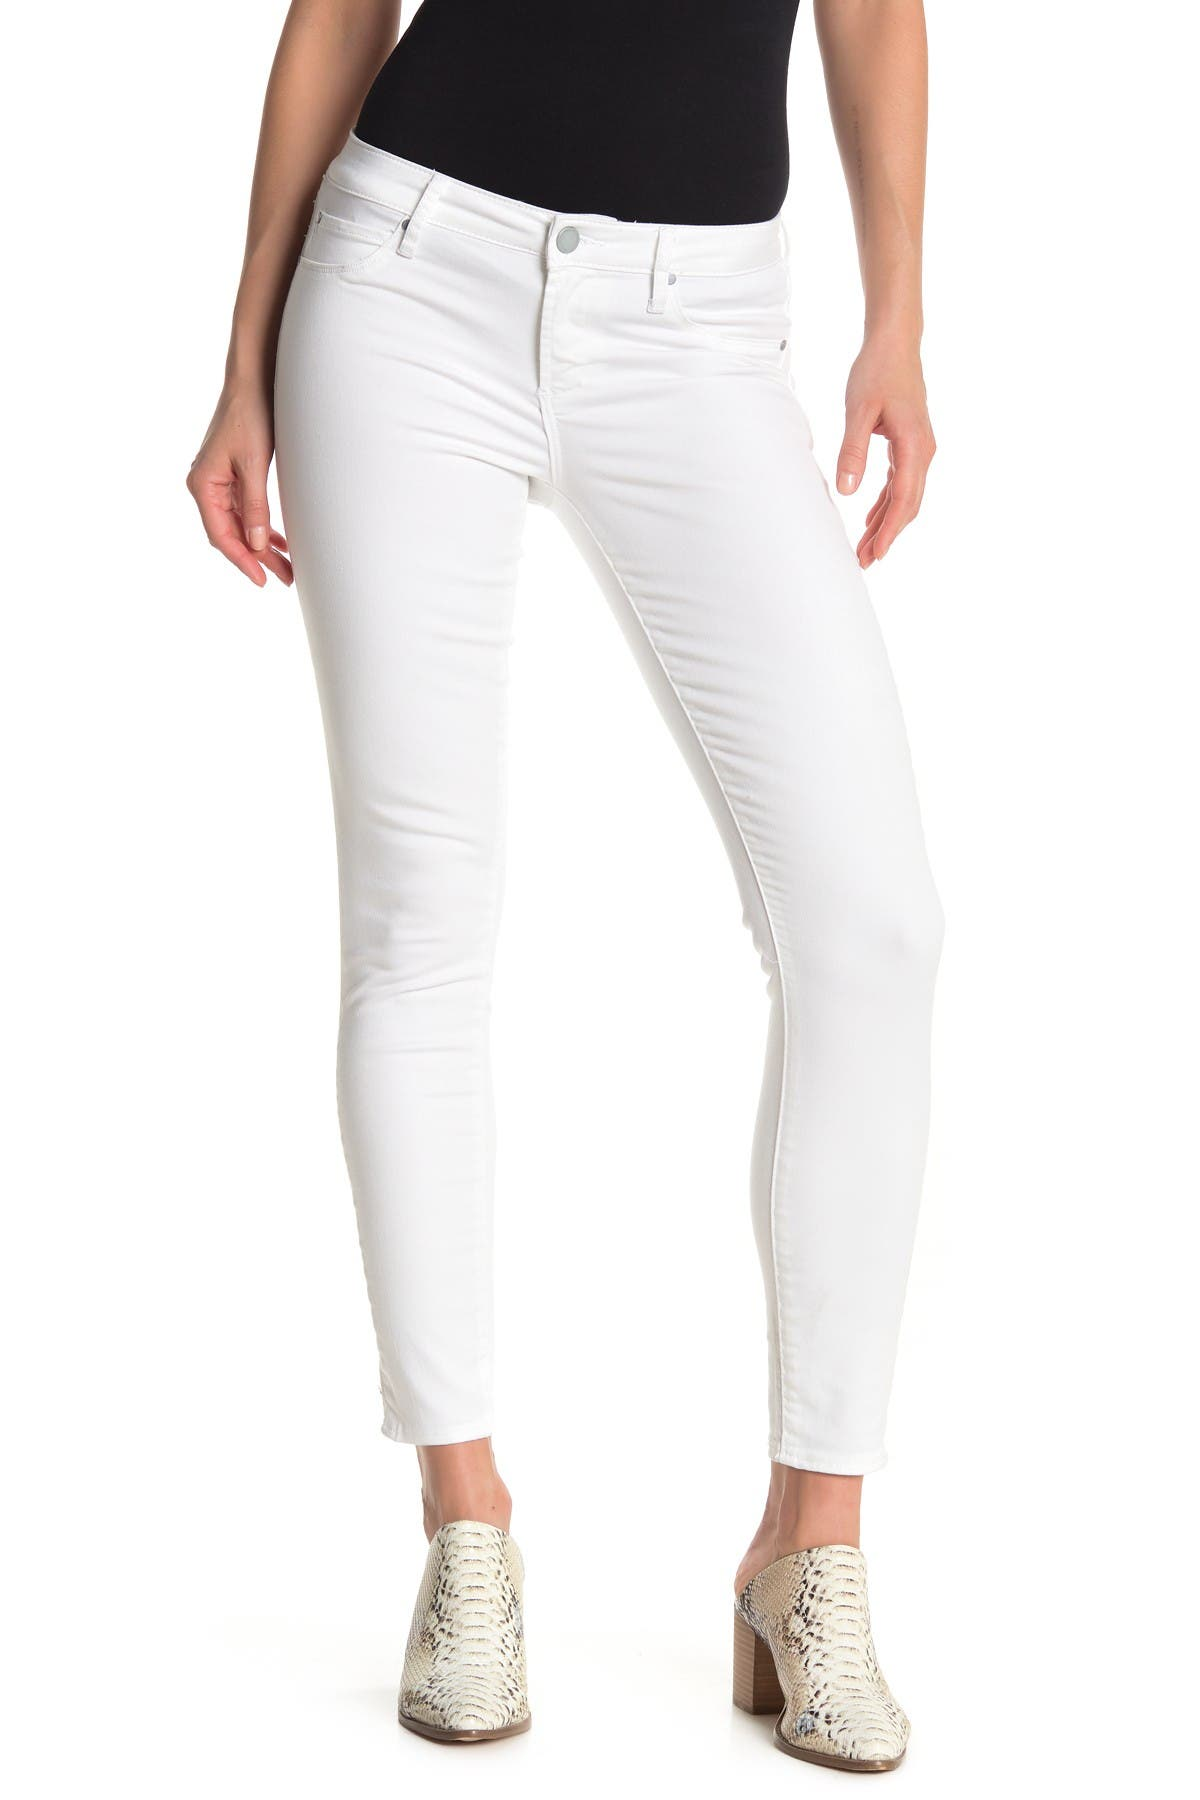 Image of Articles of Society Sarah Skinny Jeans